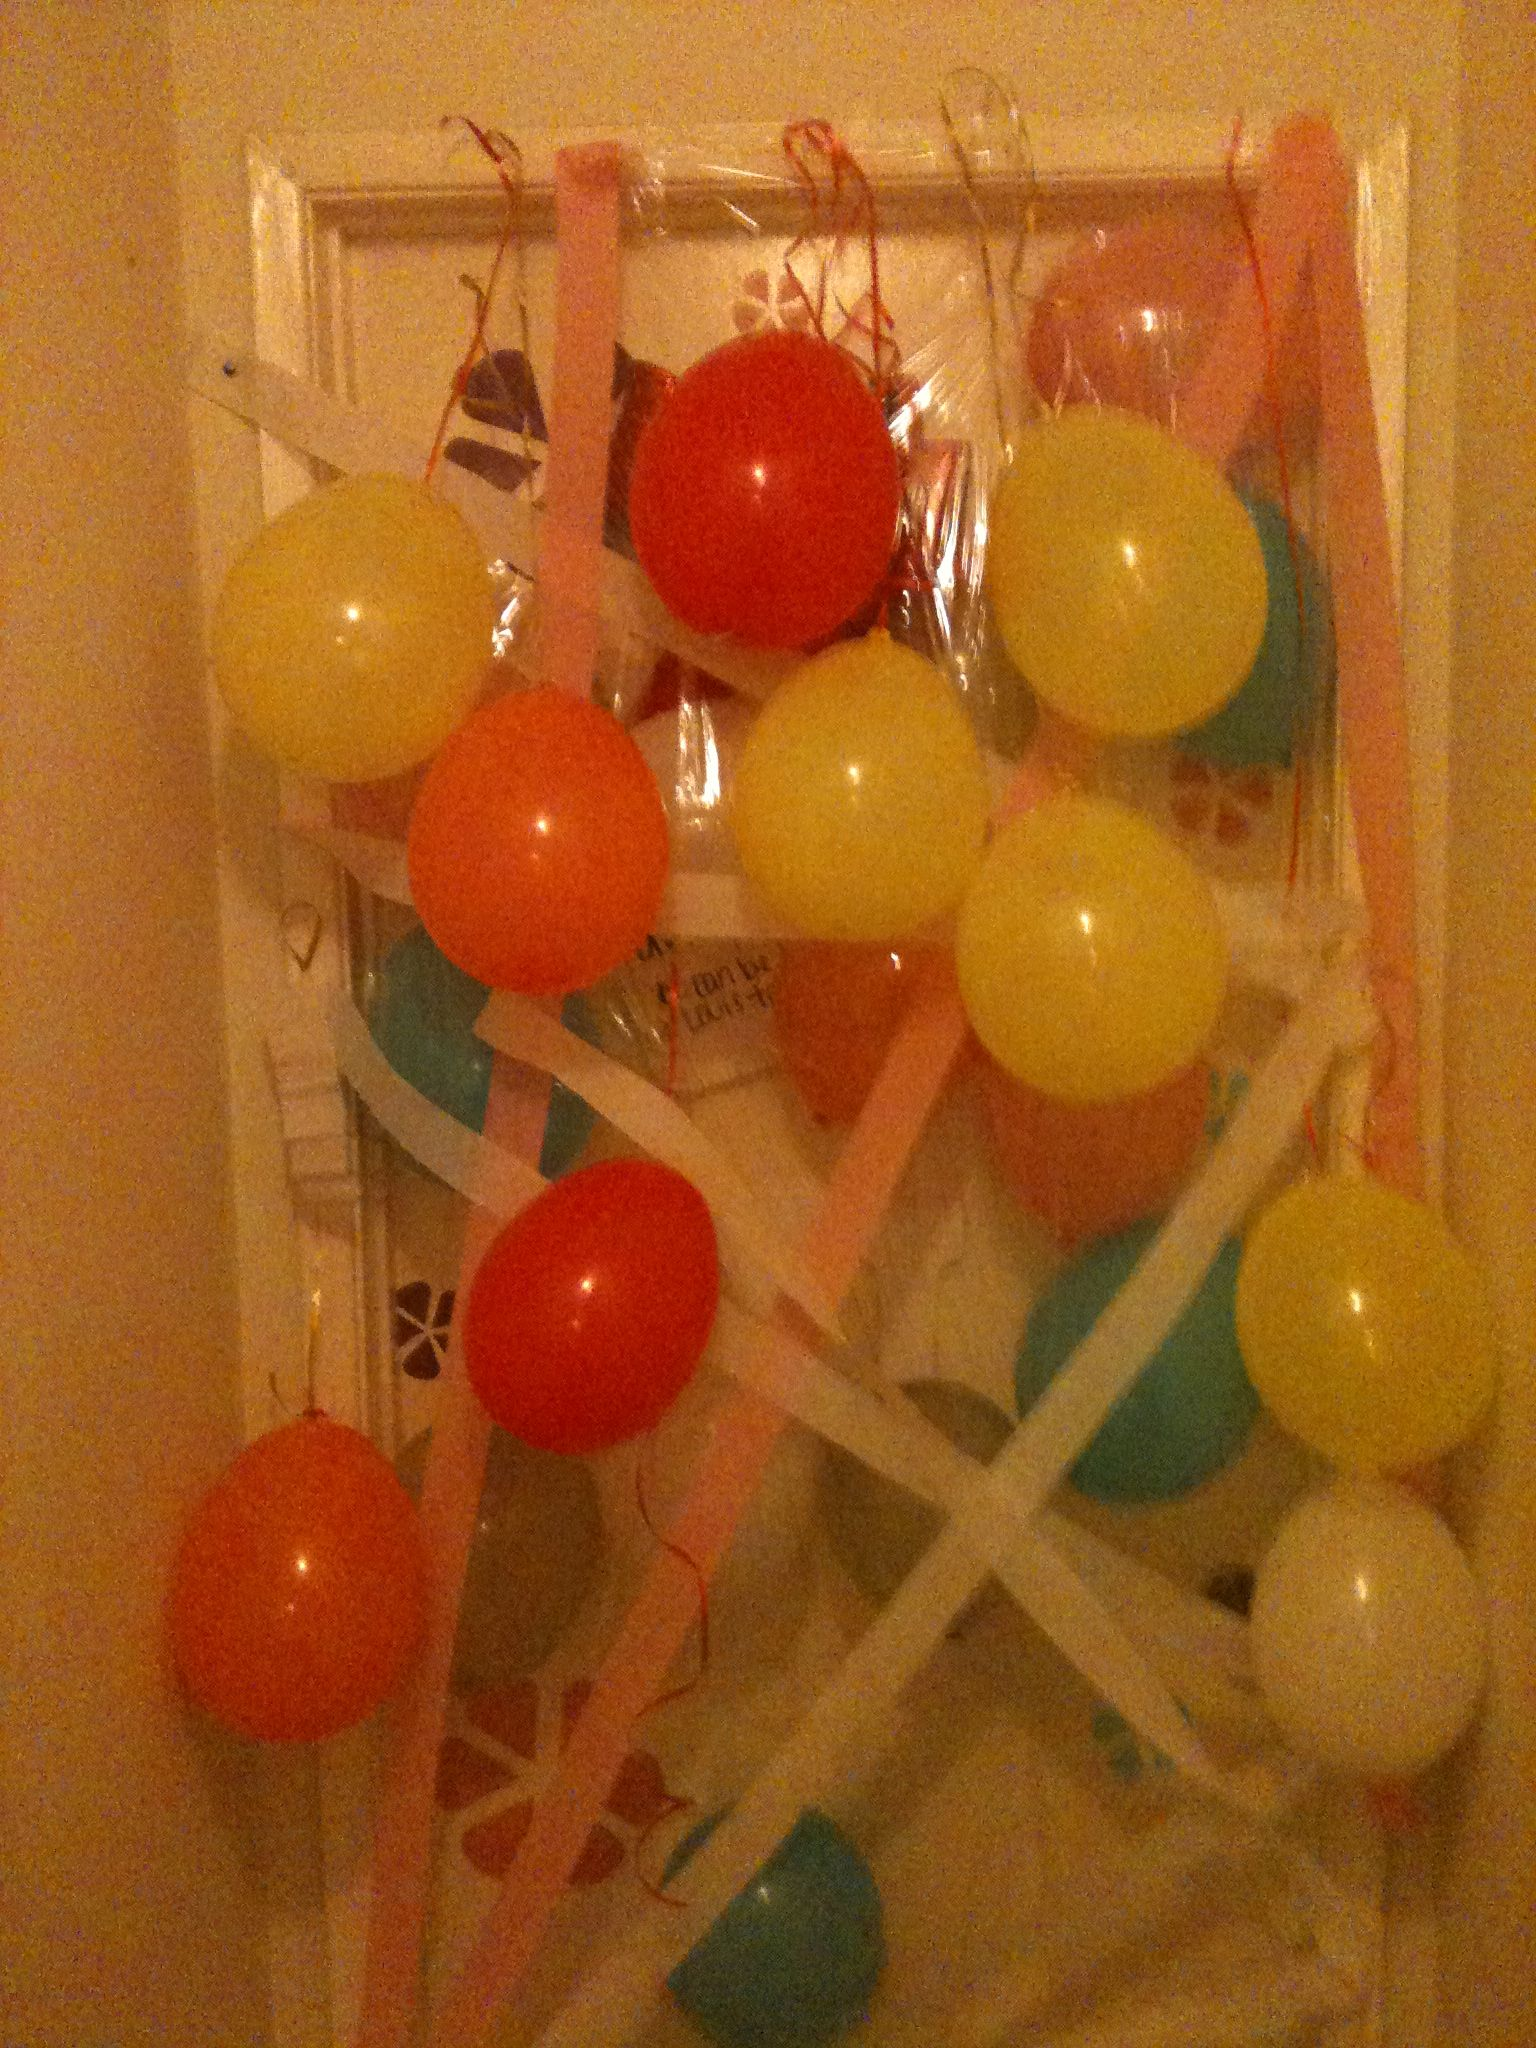 Balloons sealed with plastic wrap to fall in when the door ...